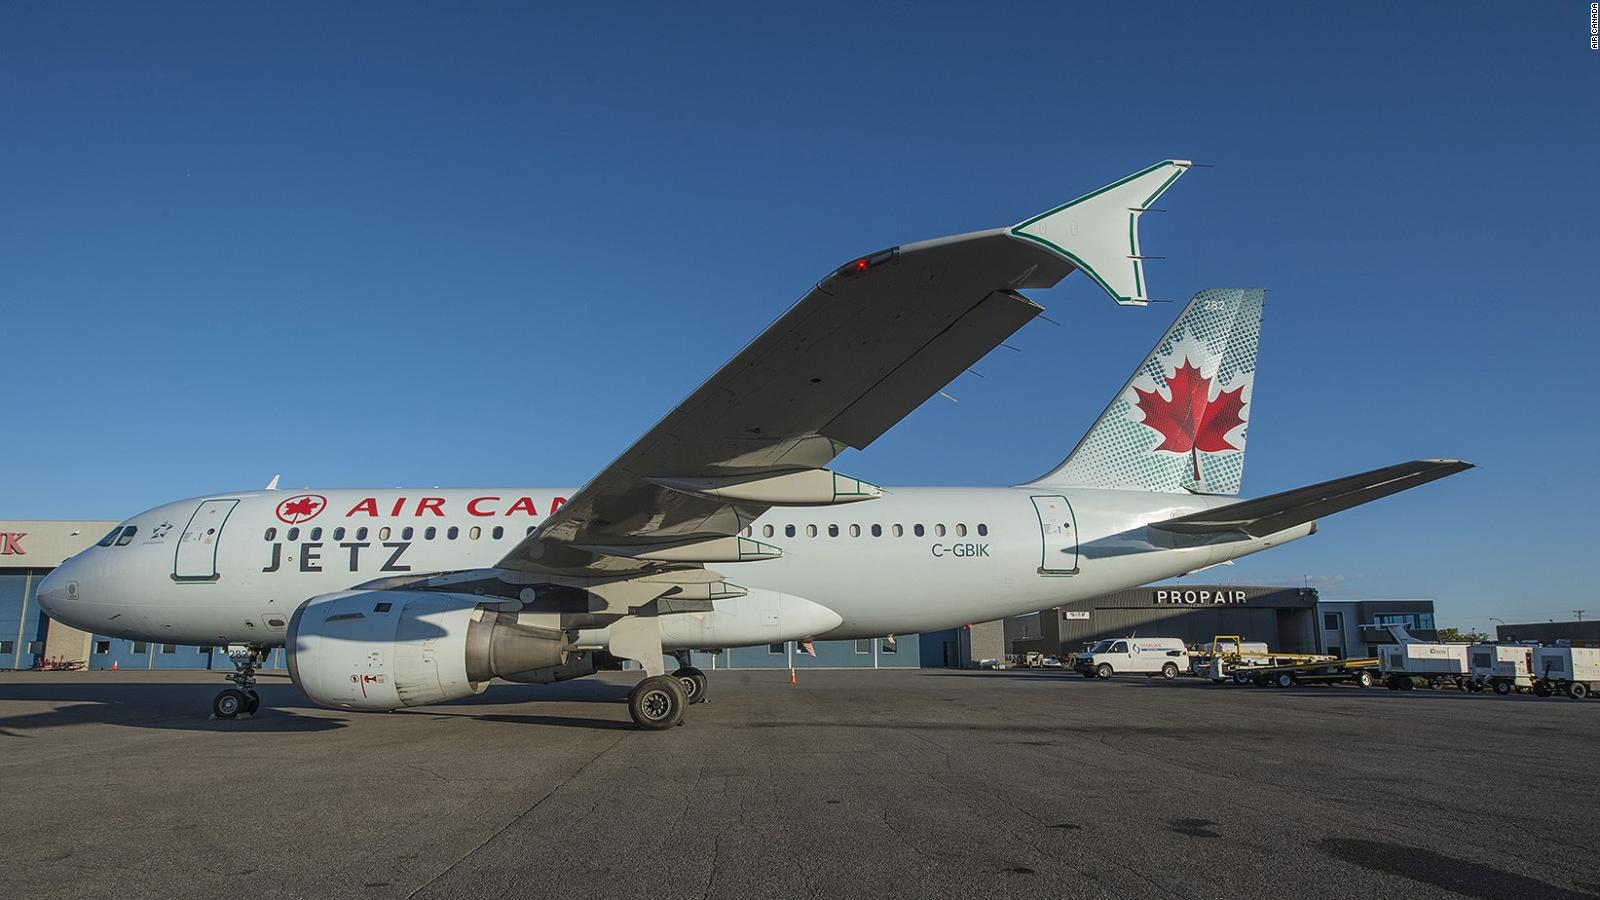 Air Canada S Jetz Business Class Planes Are Now For The Public Cnn Travel Airline company makes charter and regular passenger flights since 1937. air canada s jetz business class planes